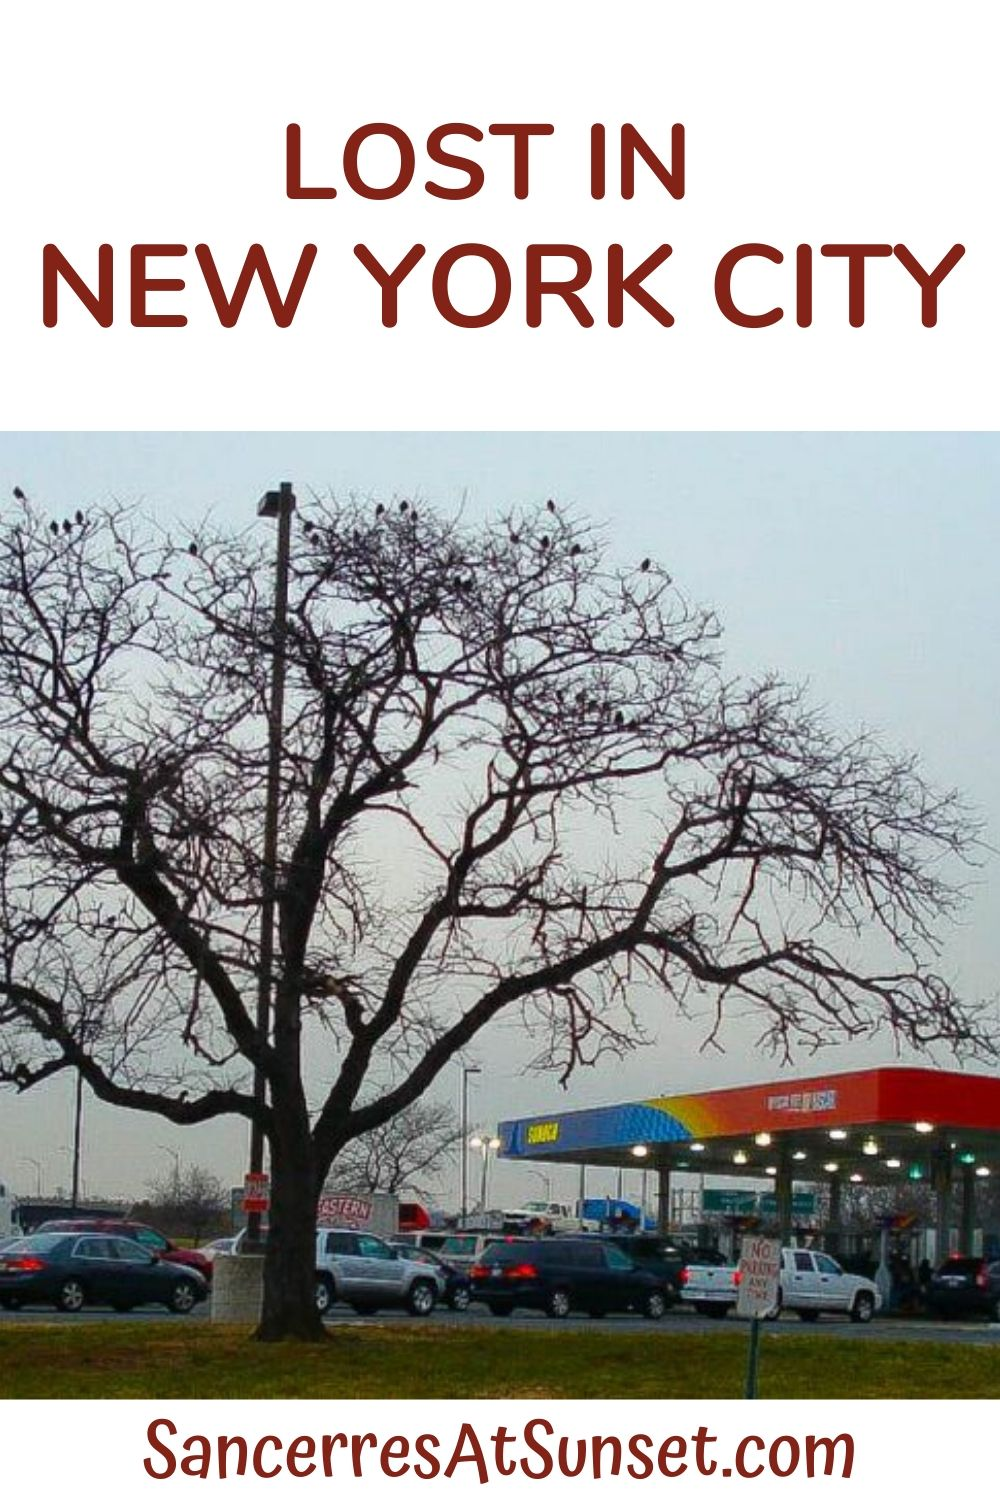 Lost in Queens.  And Brooklyn.  Manhattan, the Bronx, and Staten Island too.